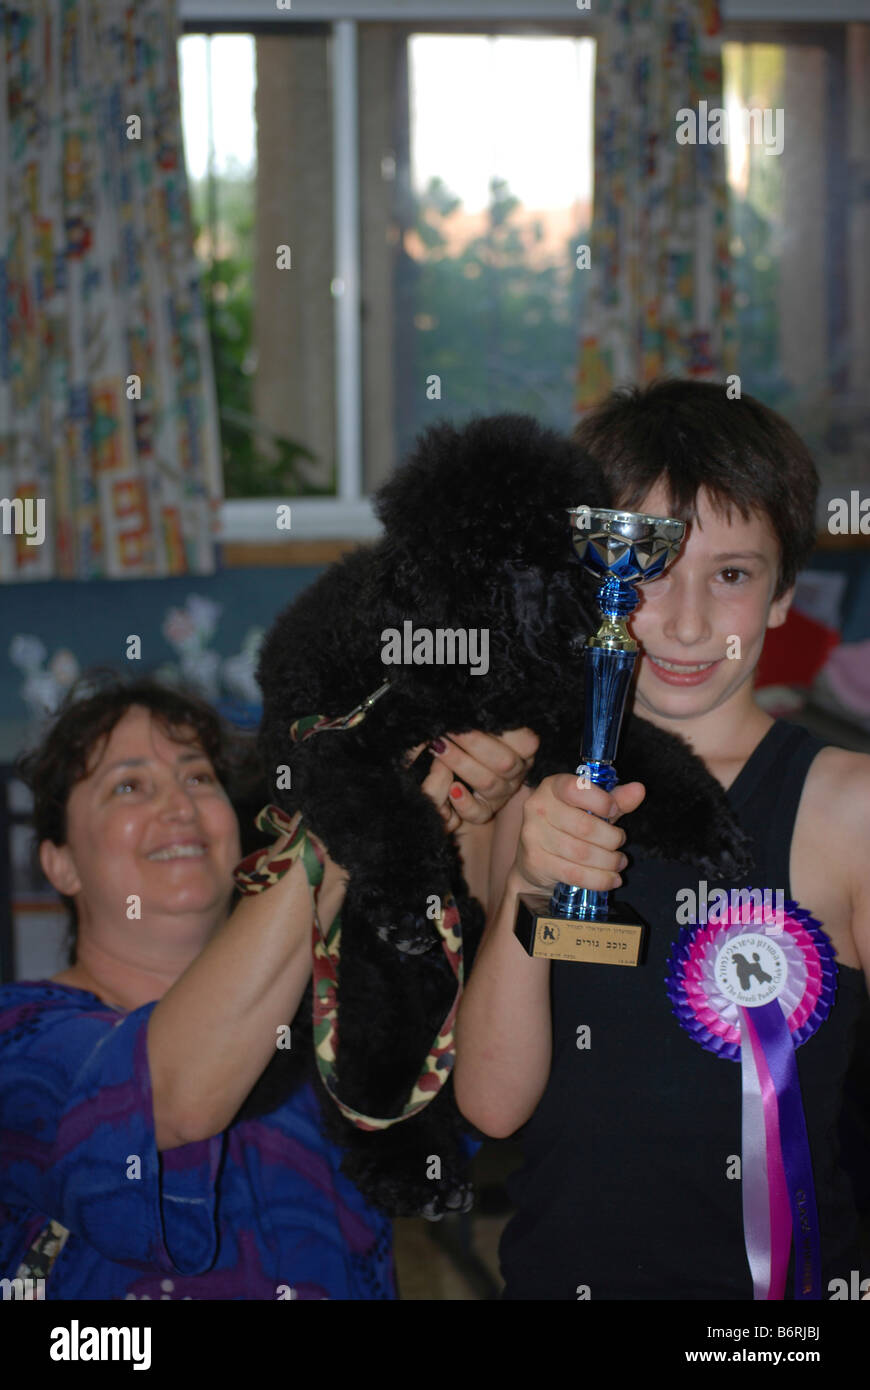 Israel International Dog Show May 17 2008 Proud mother looking at her son a young winner with his dog and trophies - Stock Image